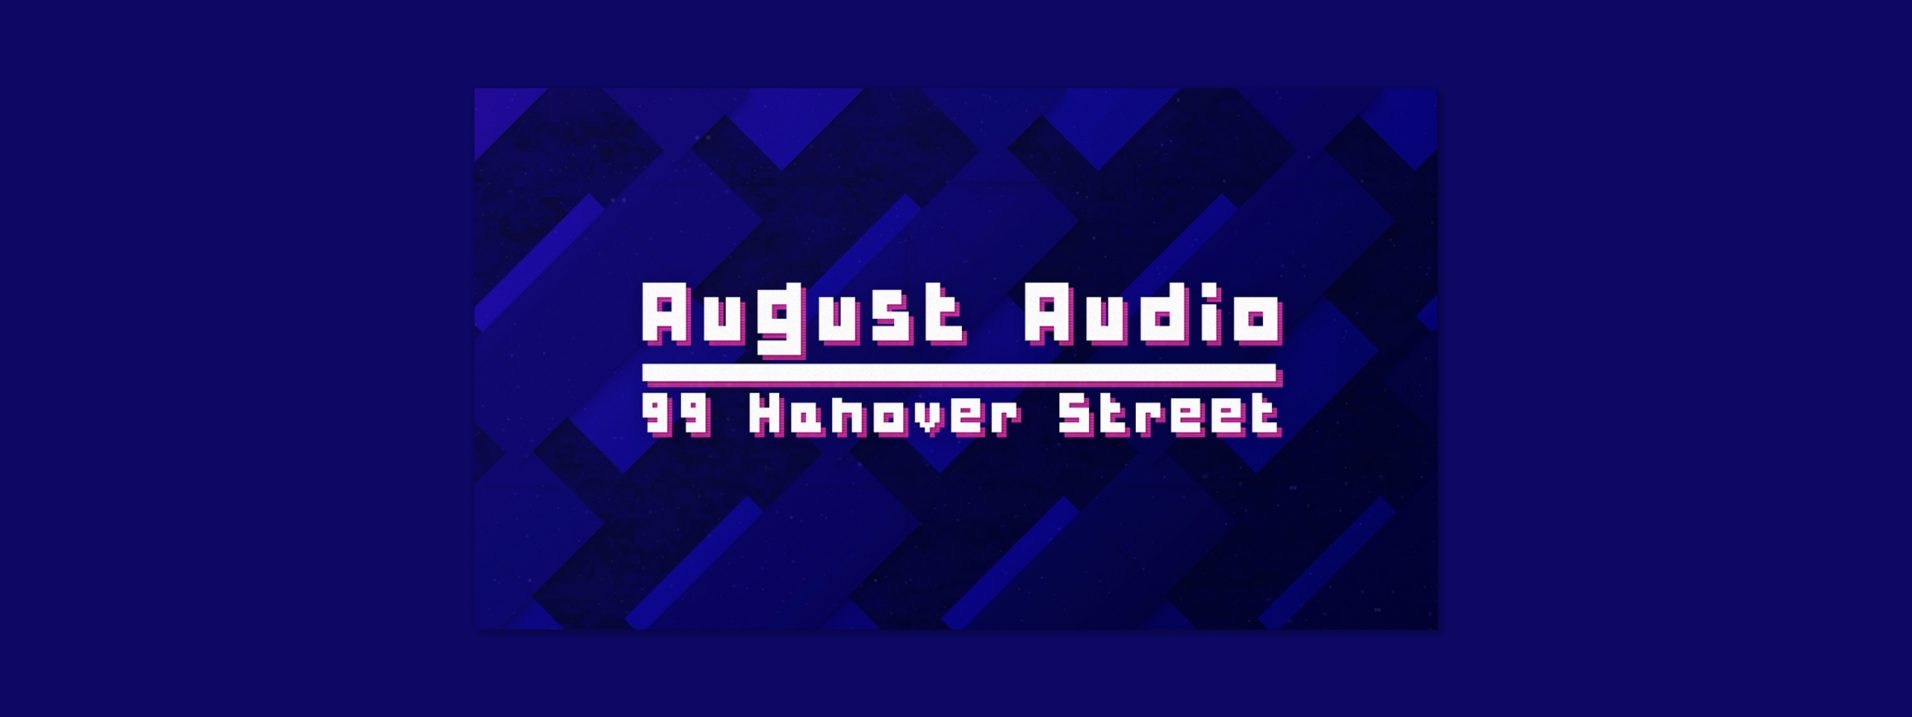 August Audio designed by Dephined for 99 Hanover Street